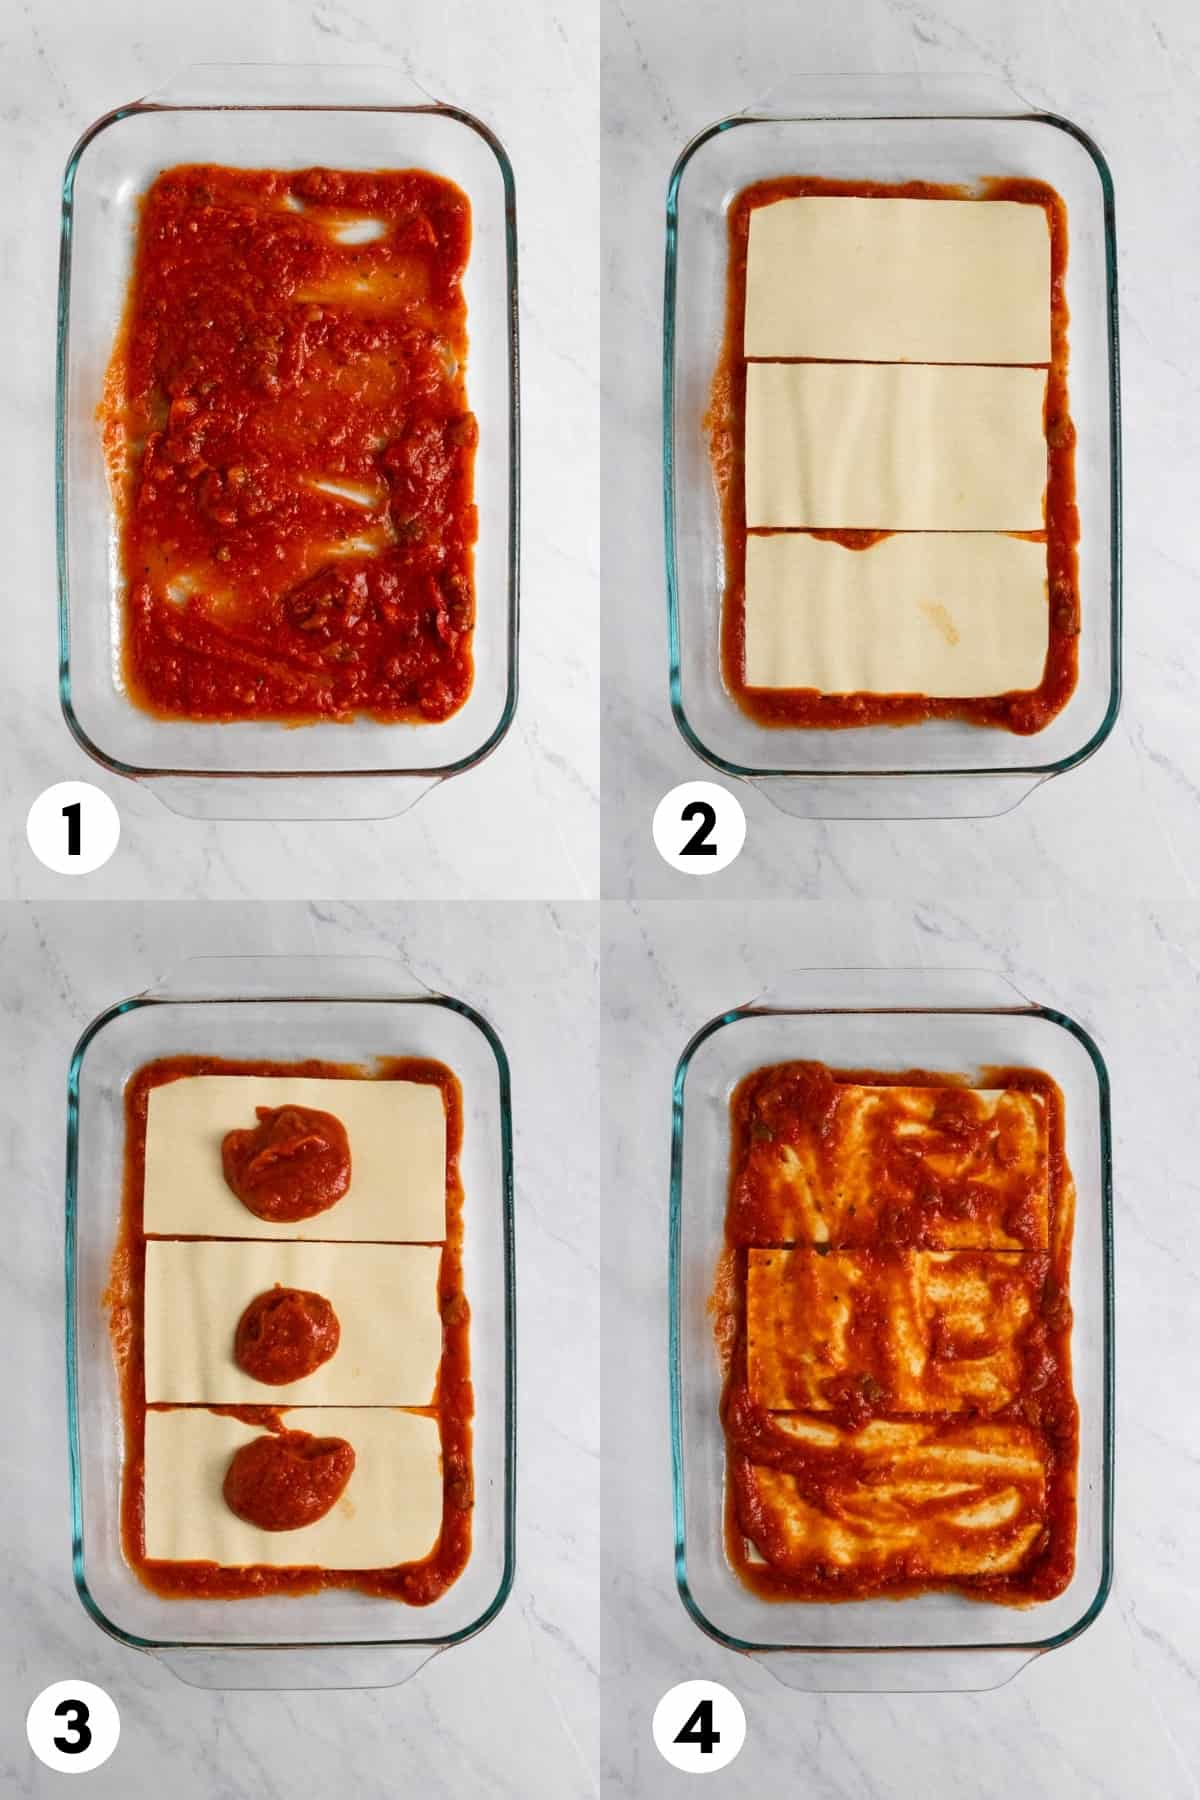 Lasagna layers added to pan.